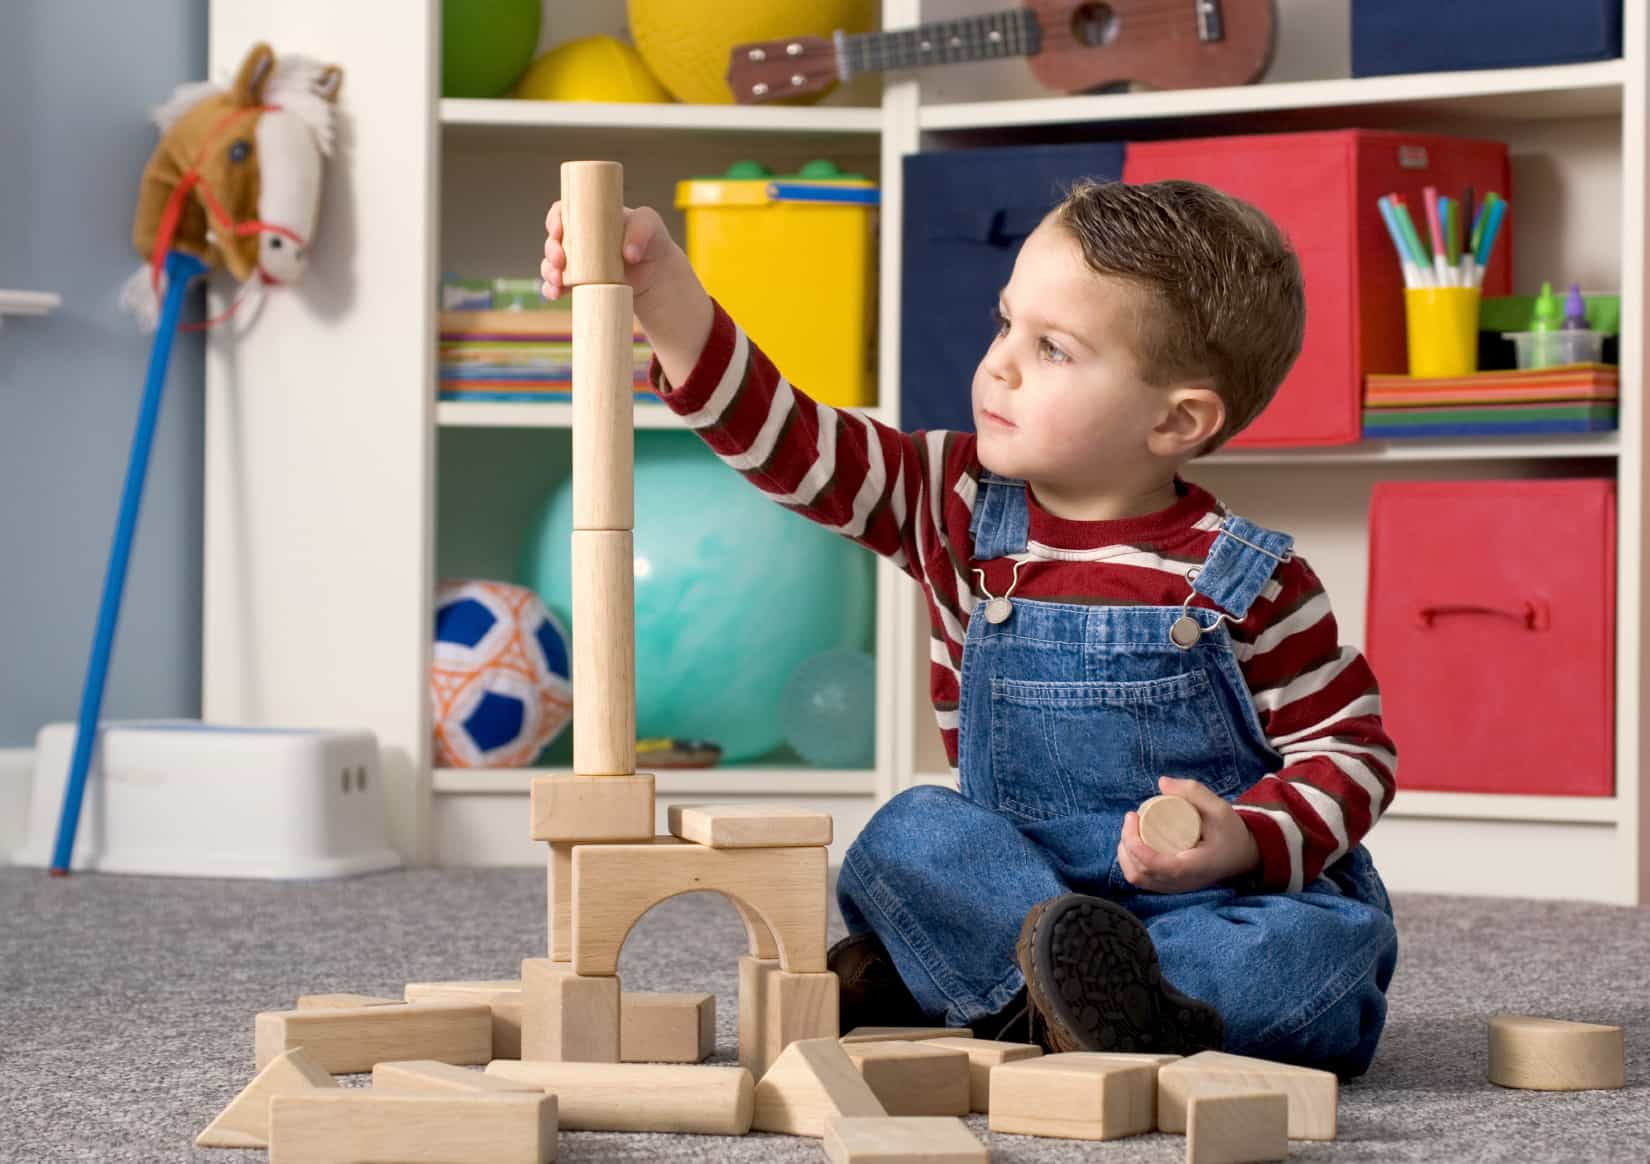 4 Year Old Developmental Toys : Your child s cognitive development catering for their needs